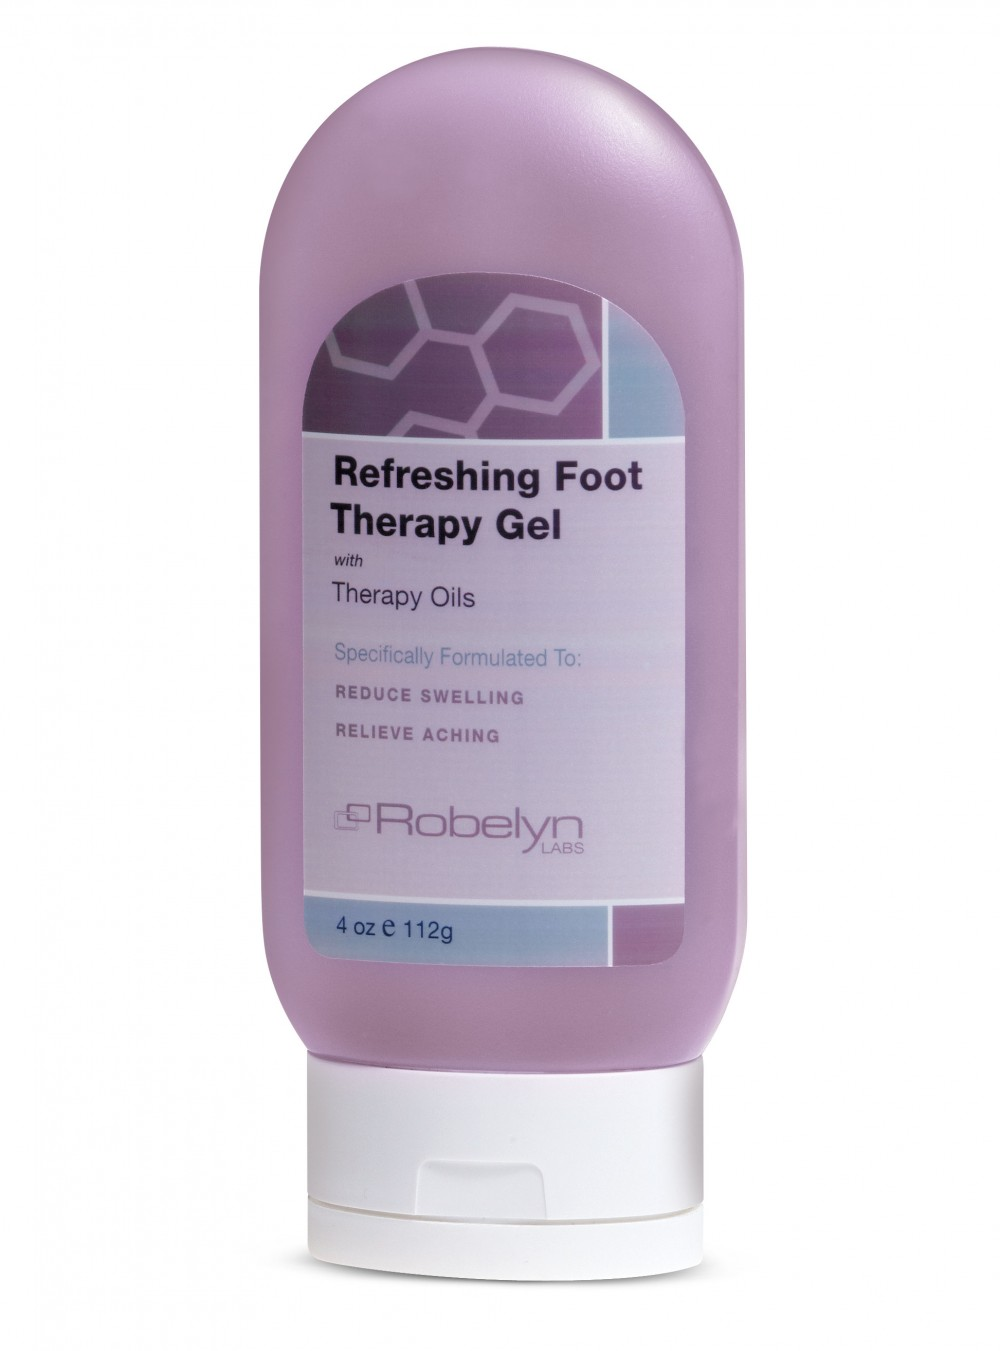 Refreshing Foot Therapy Gel